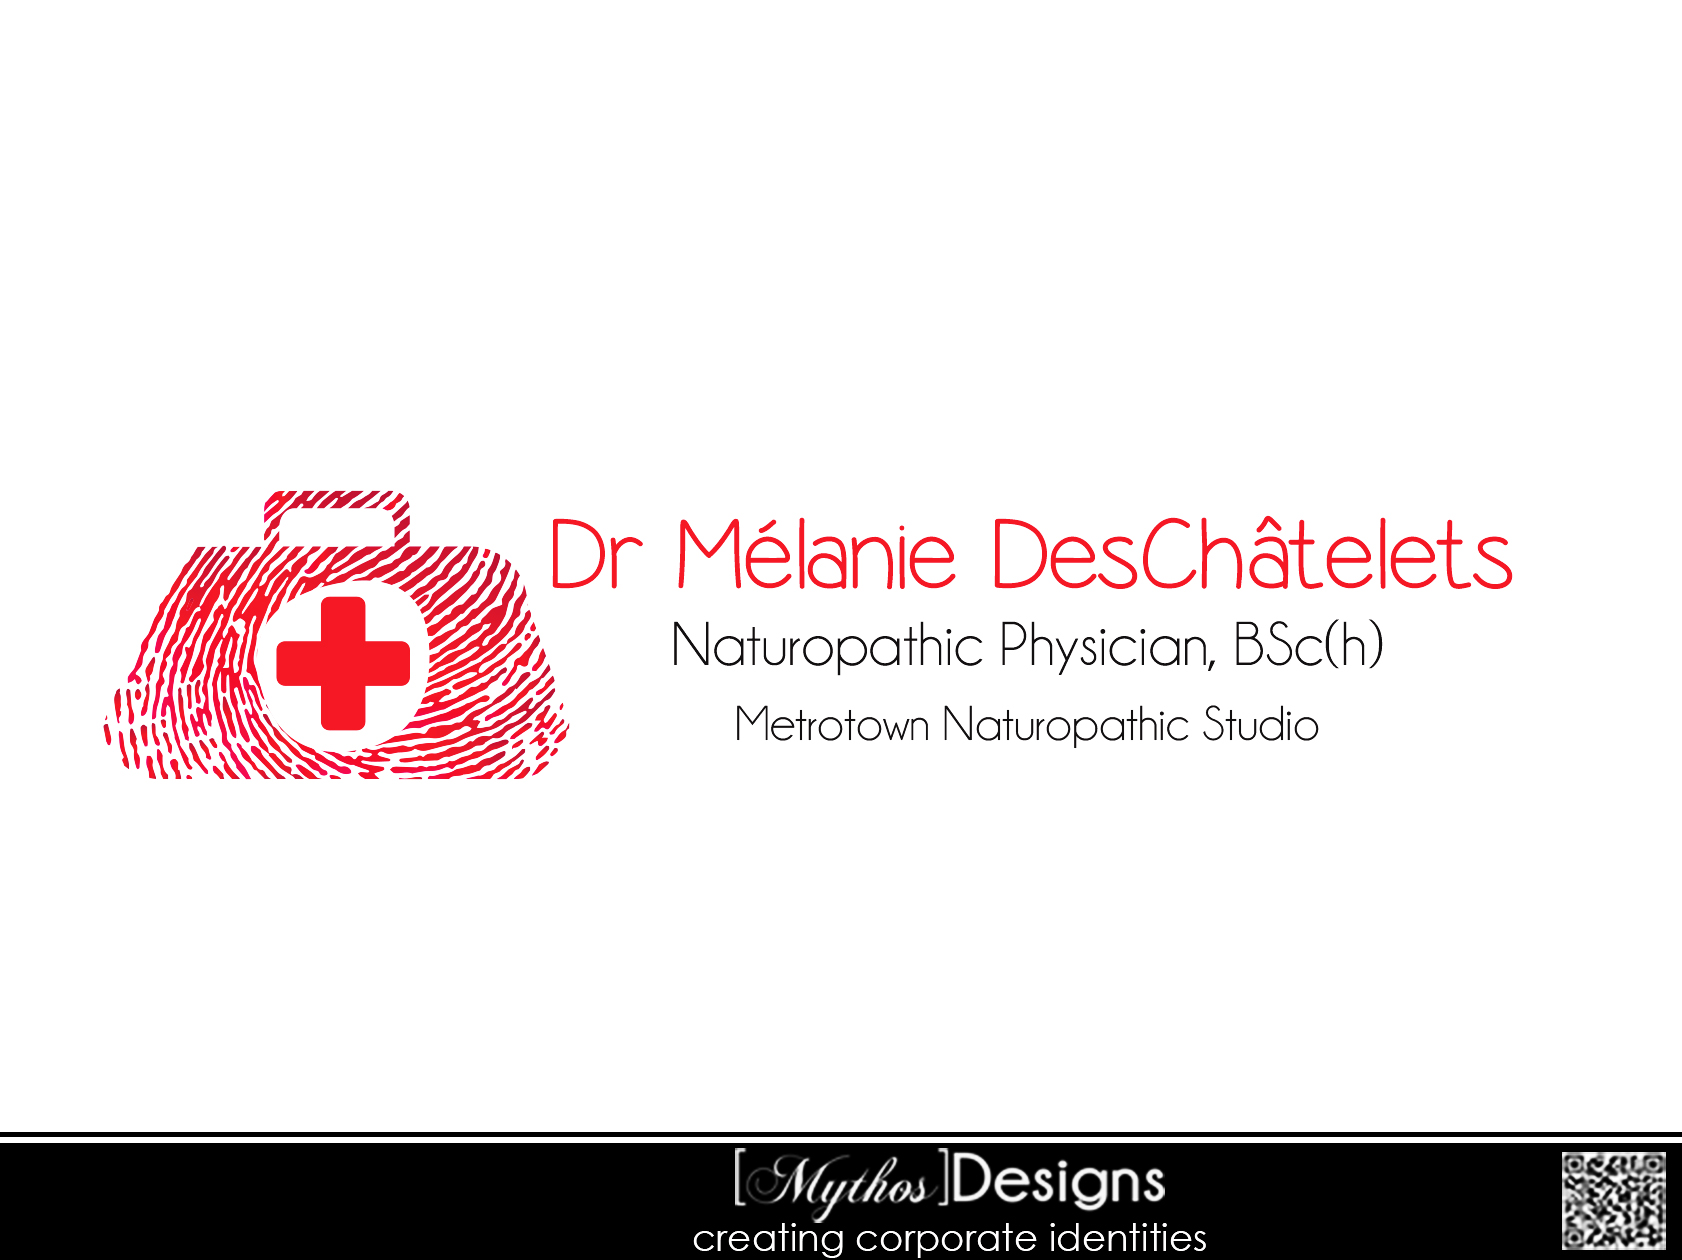 Logo Design by Mythos Designs - Entry No. 59 in the Logo Design Contest Artistic Logo Design for Dr Mélanie DesChâtelets.